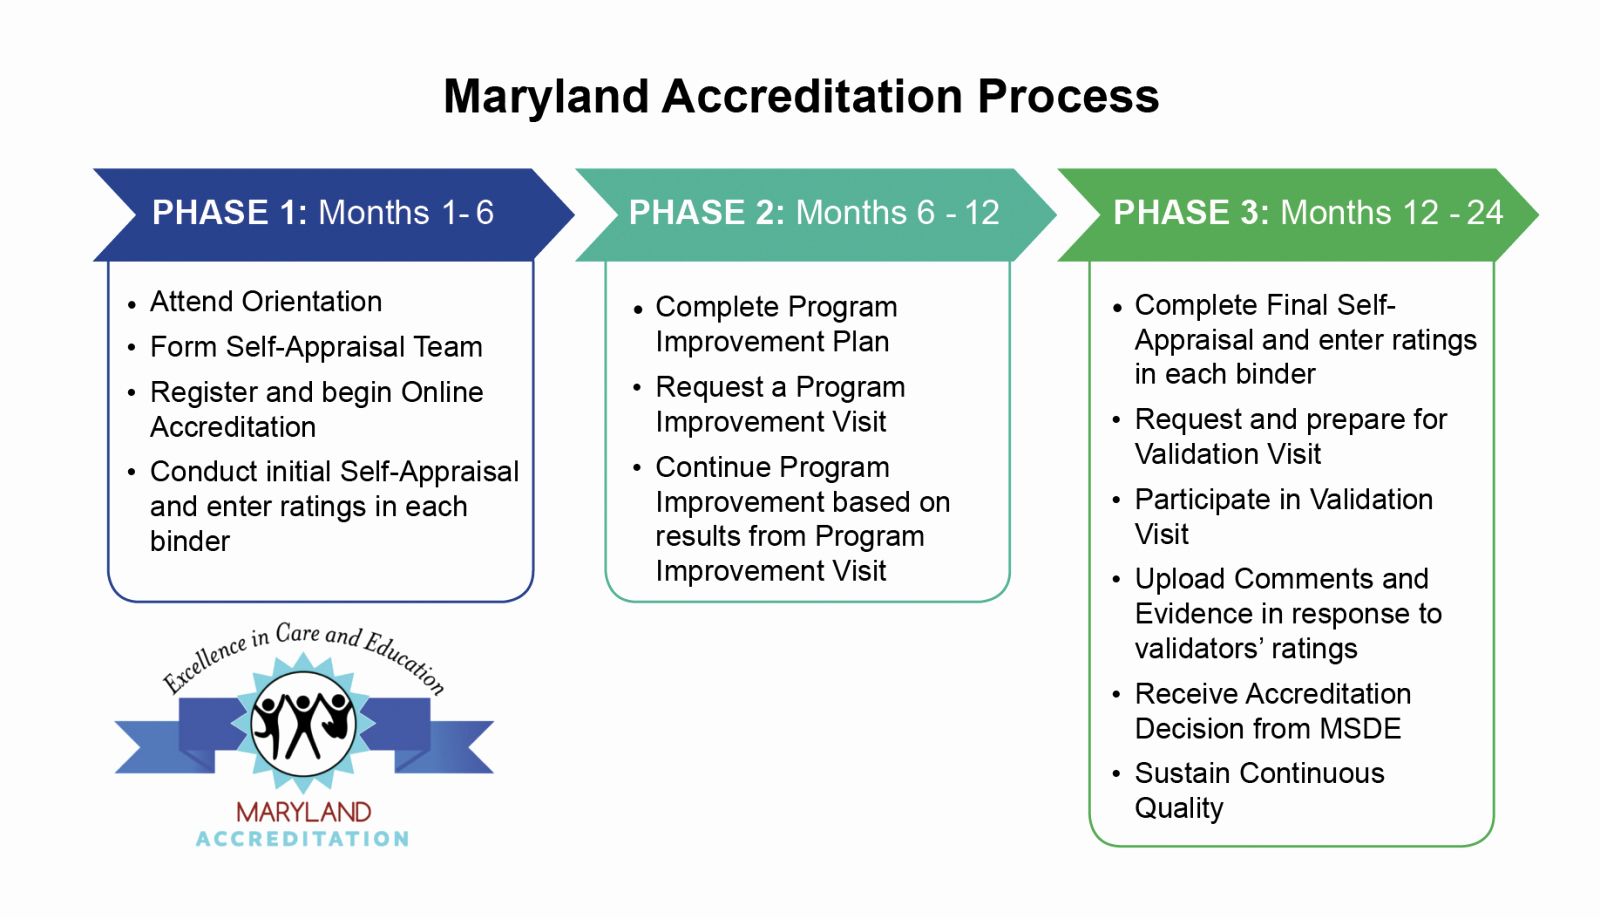 Umd 4 Year Plan Template Best Of Maryland Accreditation